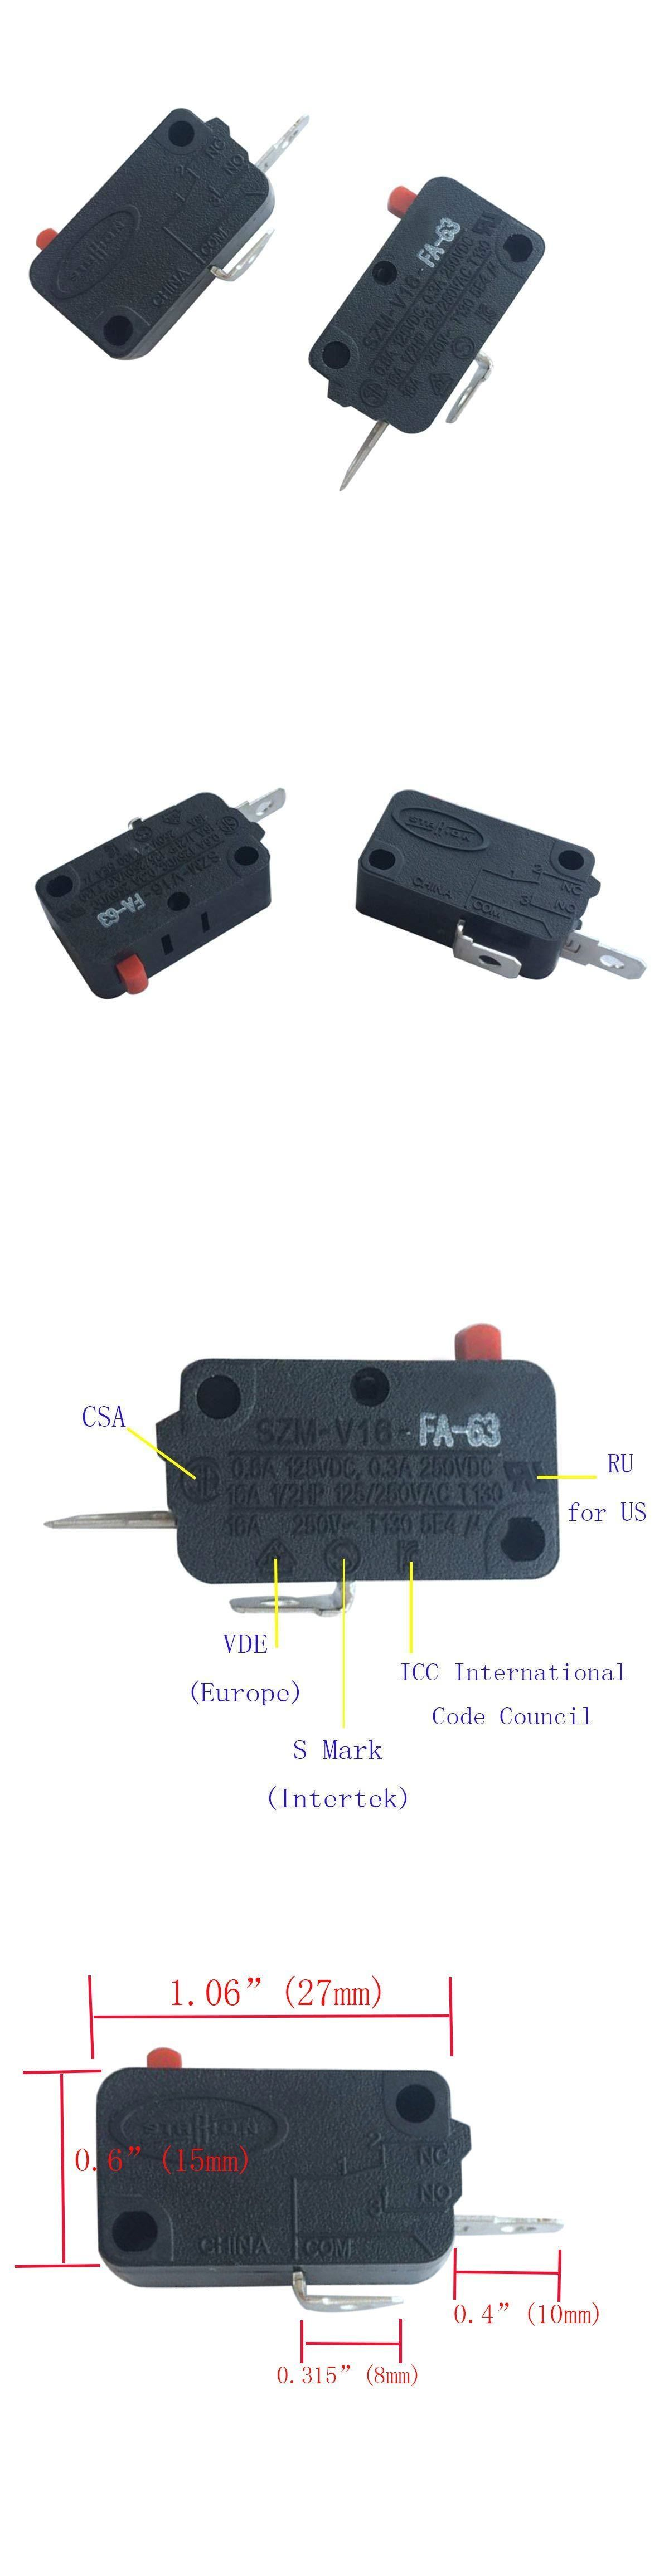 Microwave Parts And Accessories 159903 Pack Of 2 Szm V 16 Fa 63 Microwave Oven Door Micro Switch For Lg Ge Microwave Oven Microwave Parts Microwave